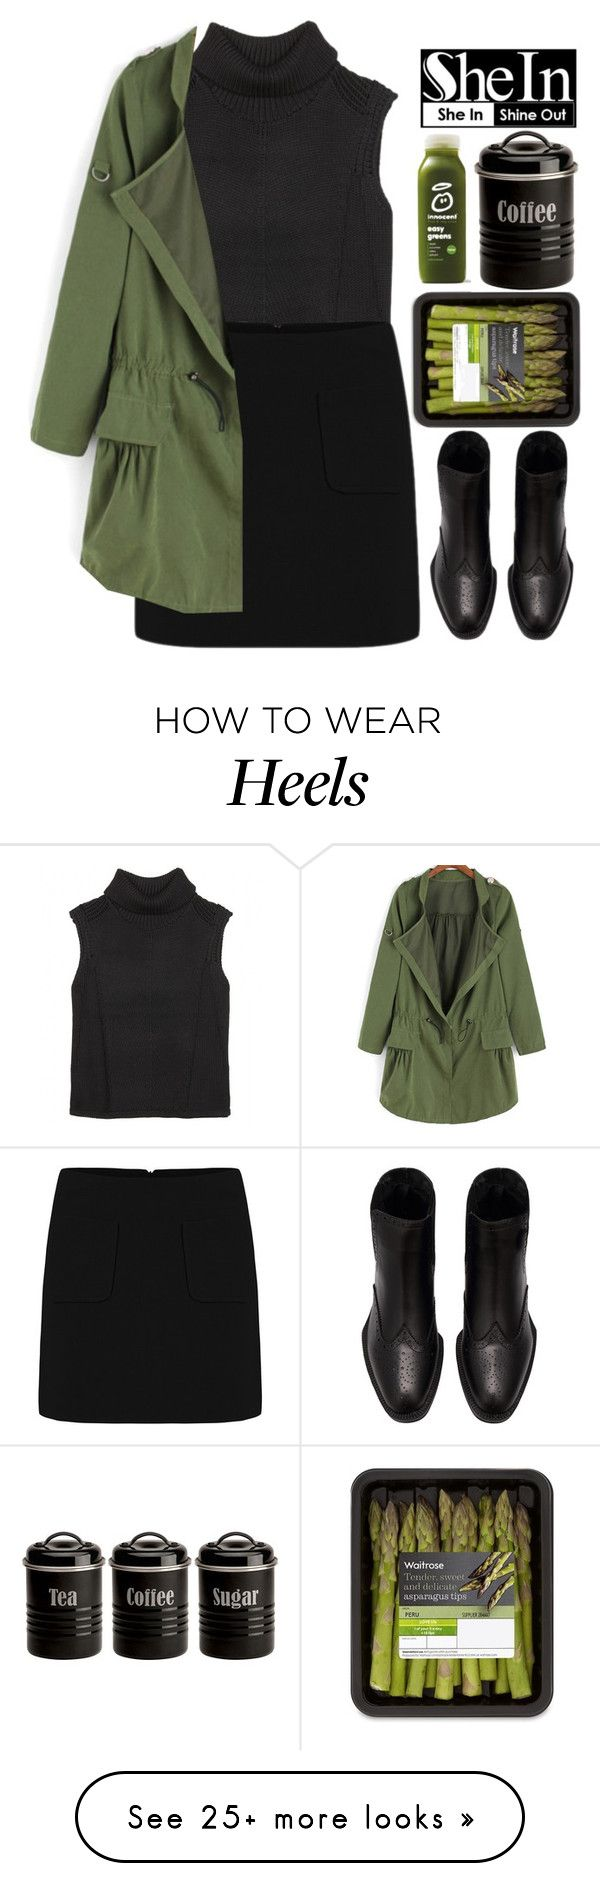 """""""#SheIn"""" by credentovideos on Polyvore featuring moda, Helmut Lang y Typhoon"""